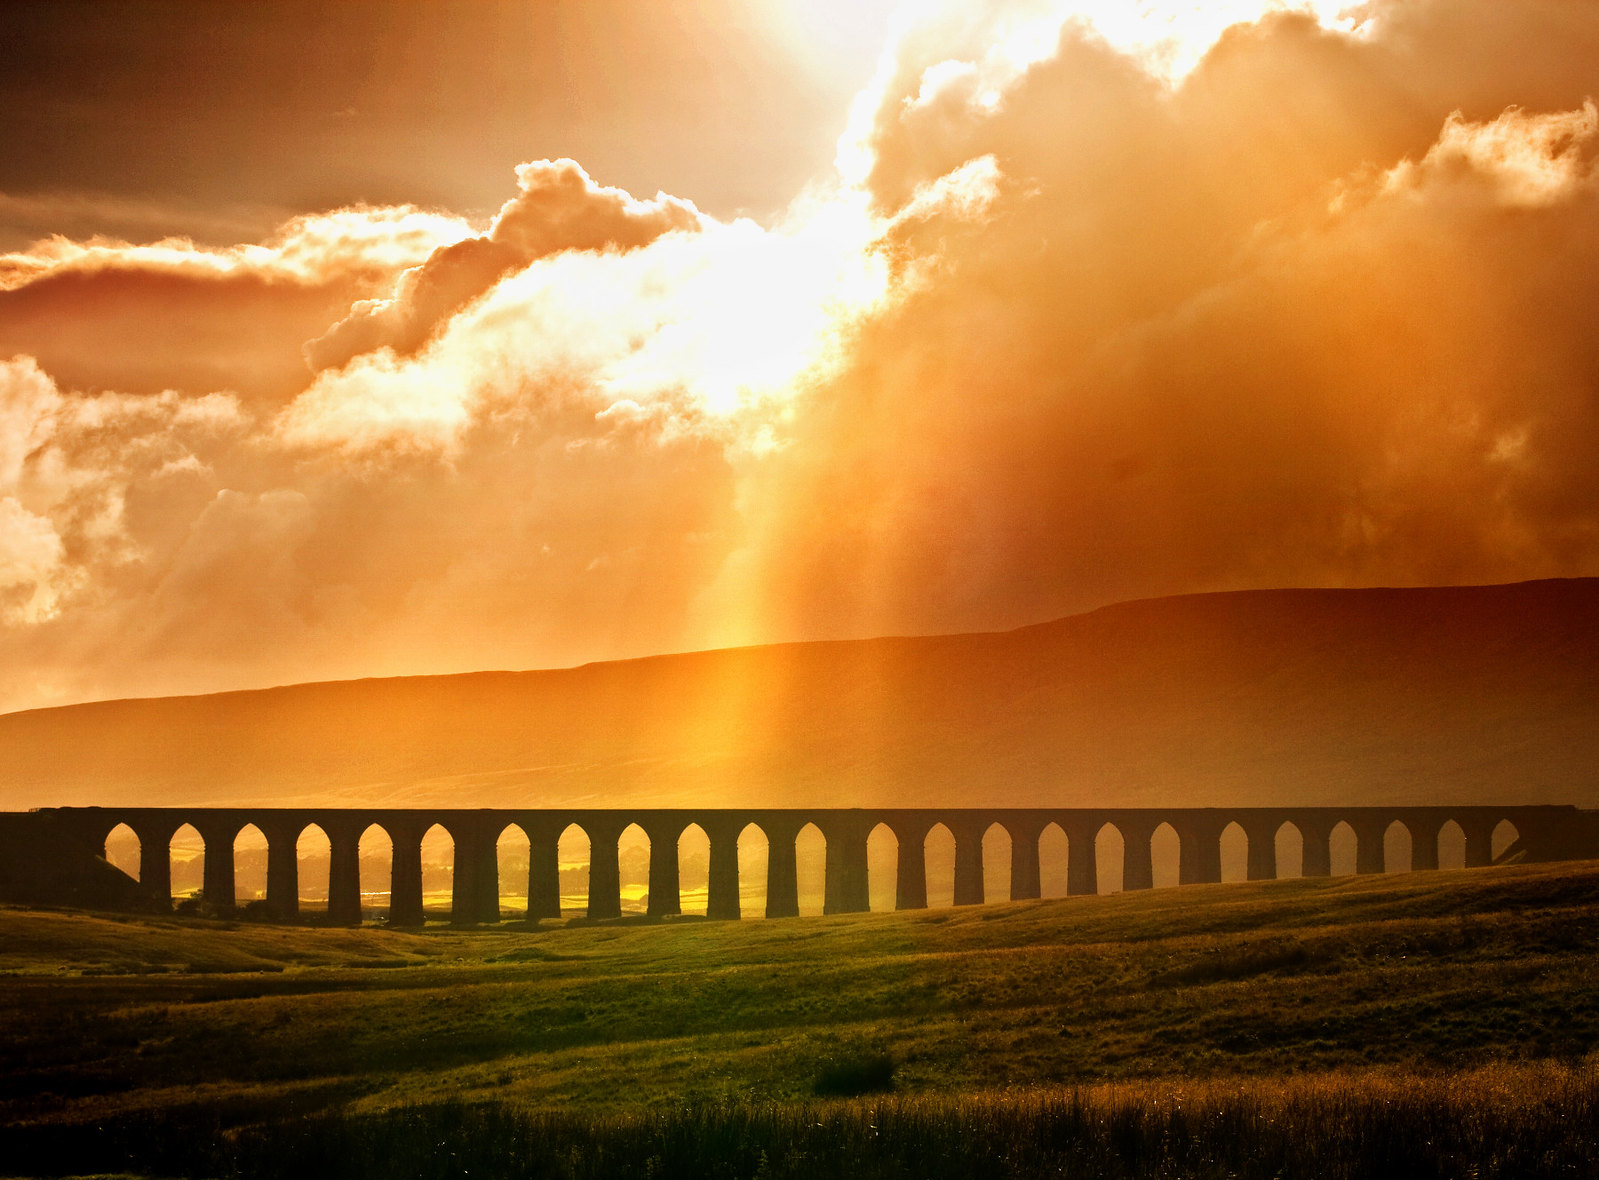 Ribblehead Viaduct cast in a glowing light. Credit chantrybee